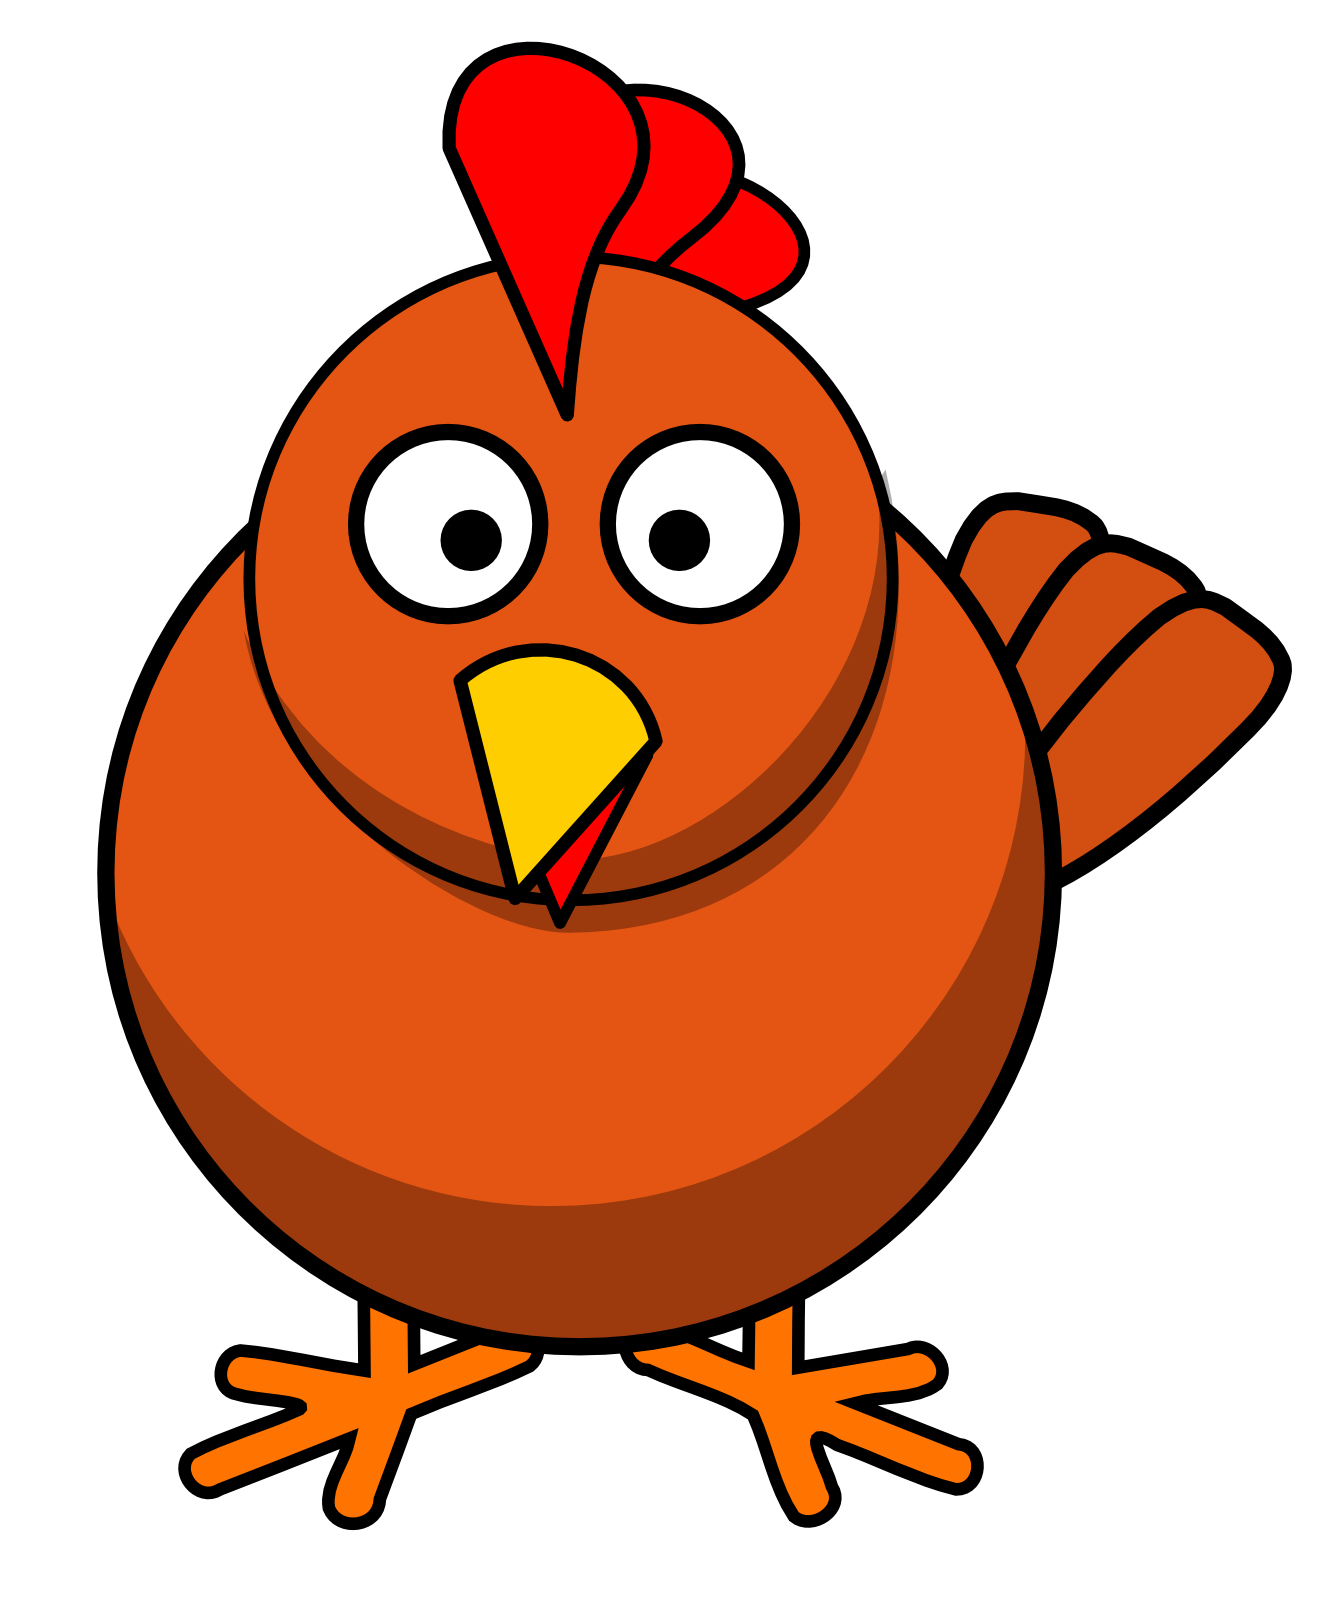 Chicken Clip Art - Chicken Clip Art